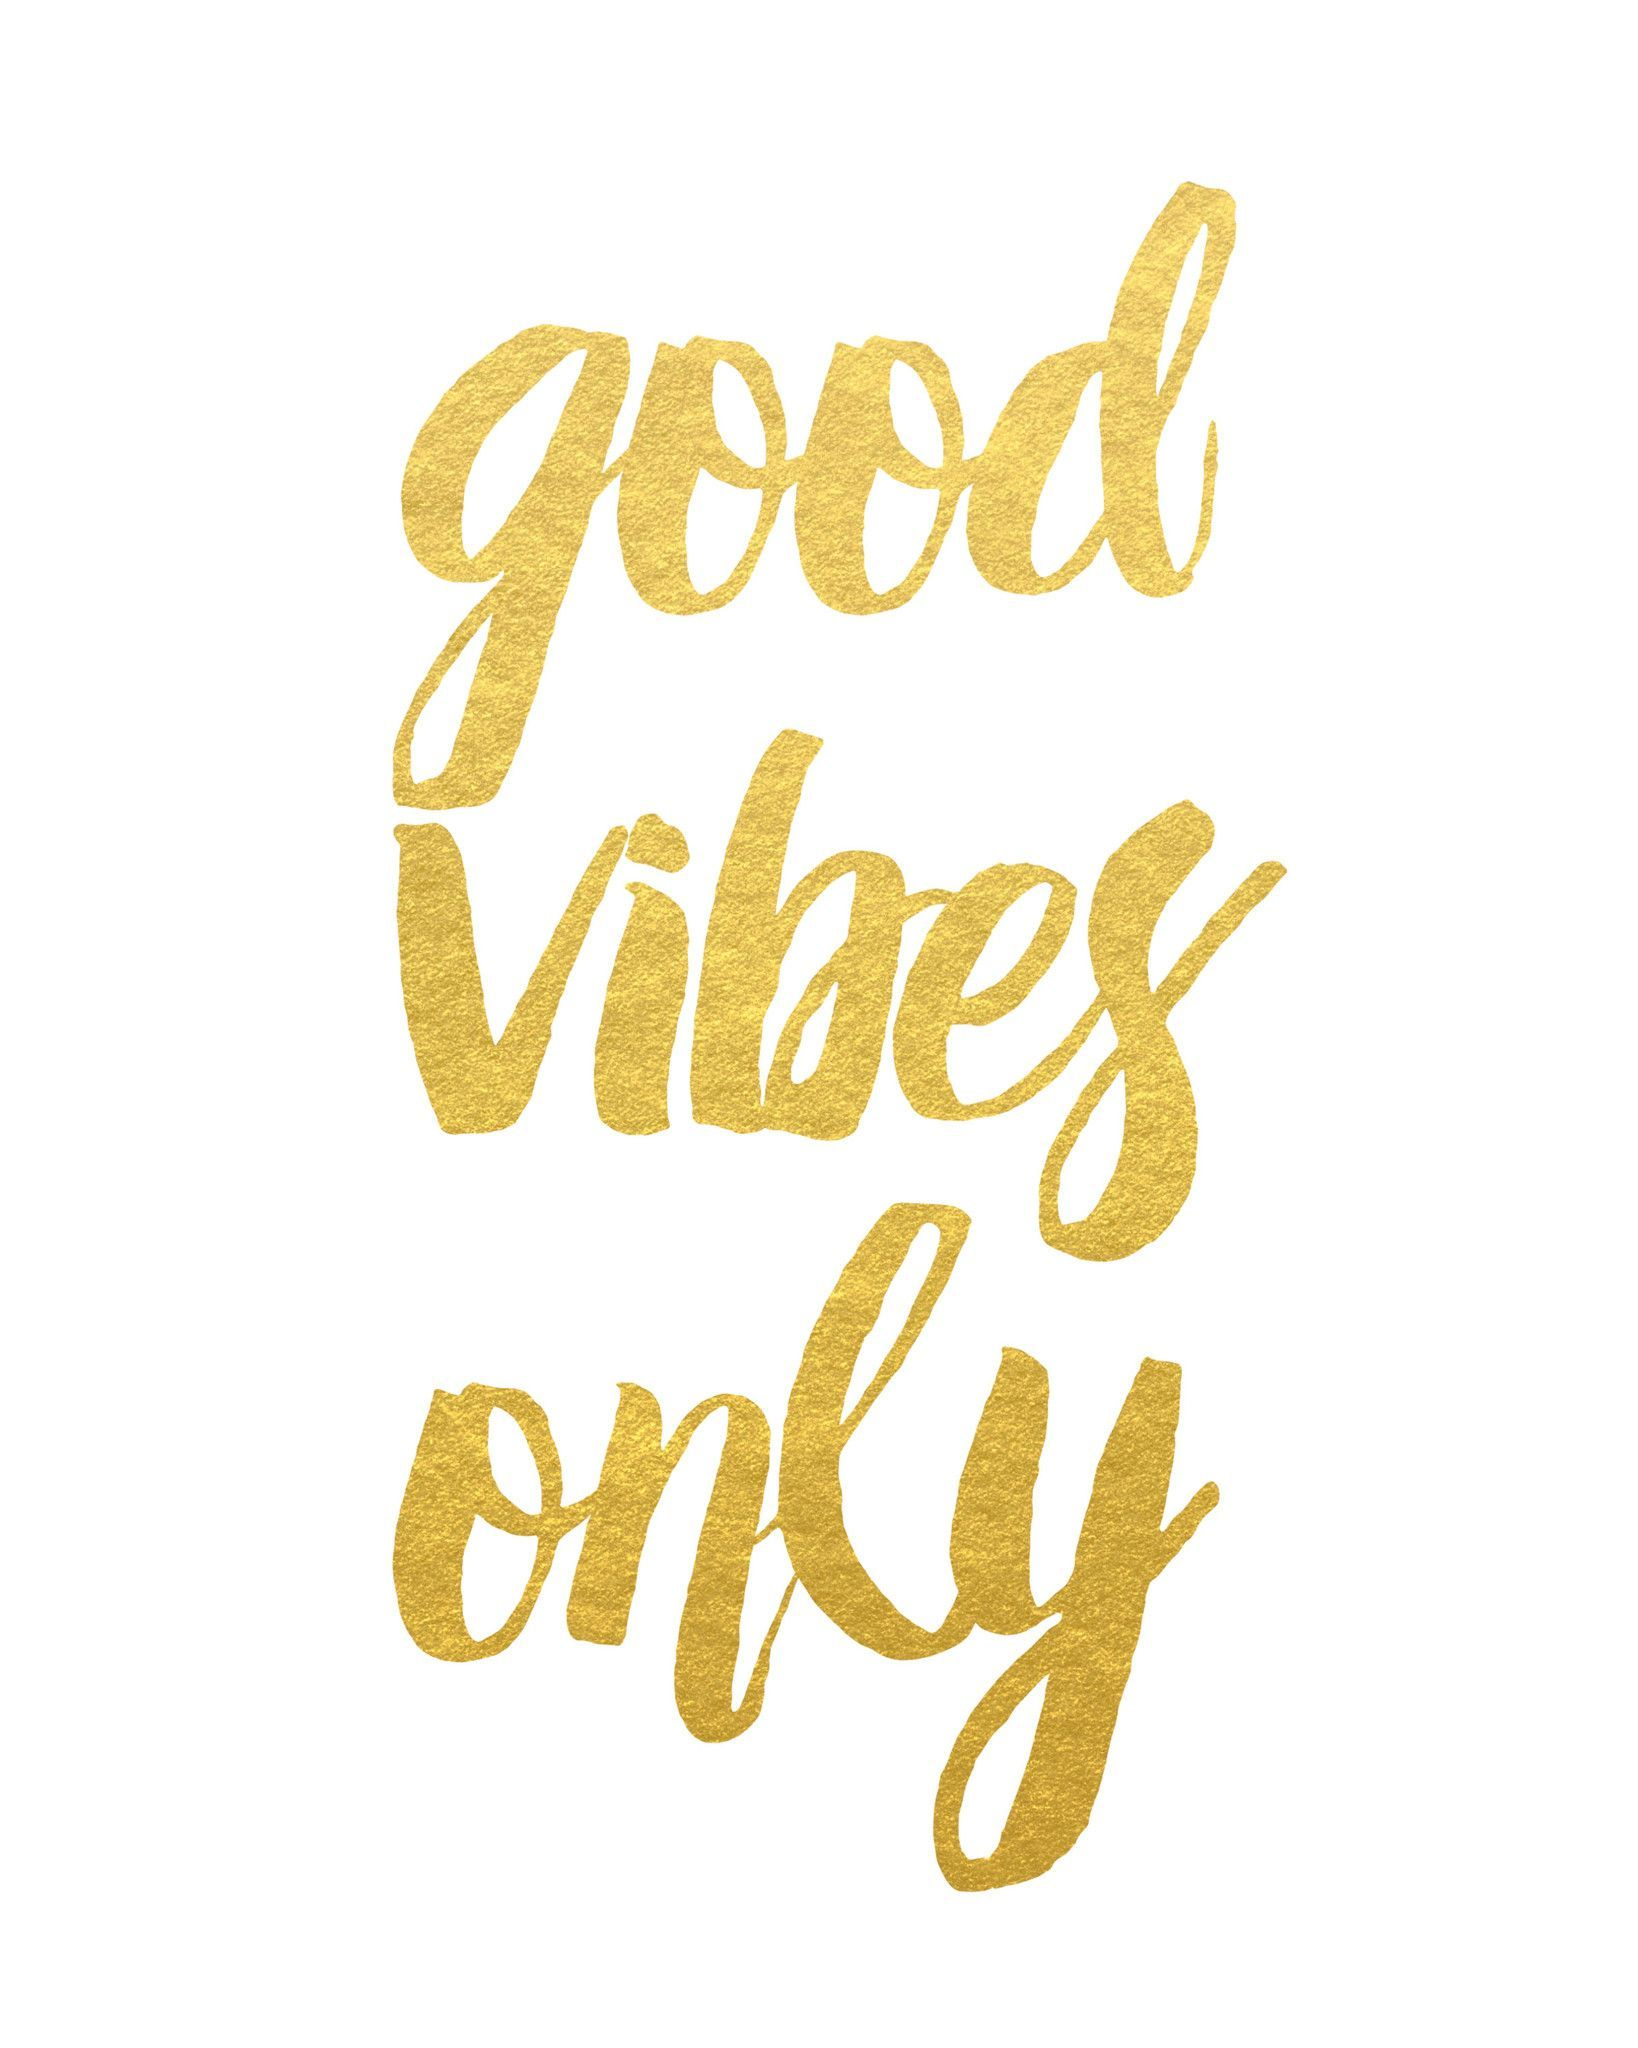 Good Vibes Only Print White satin, Satin and Gold